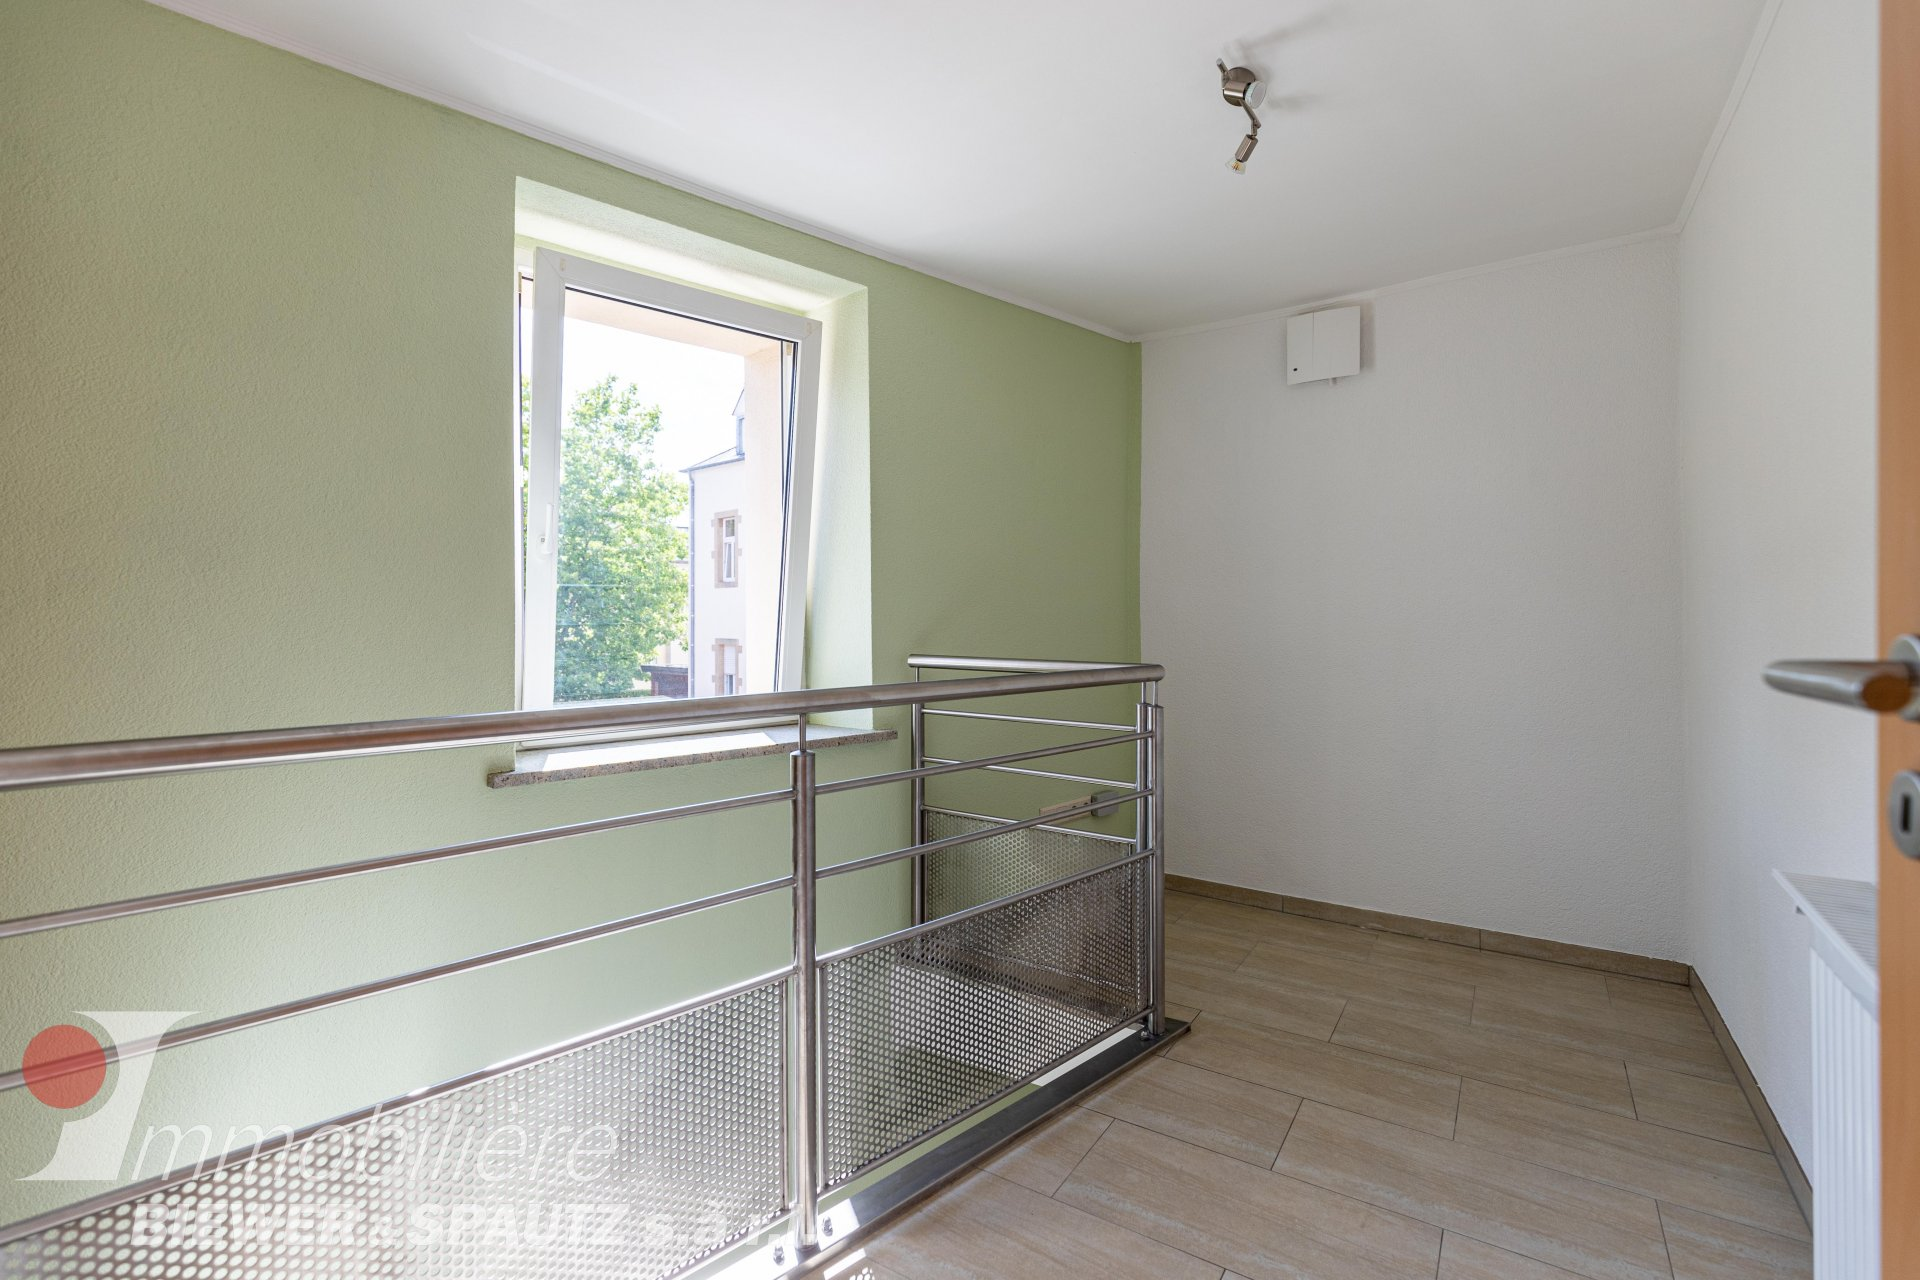 RENTED - Apartment with 1 bedroom in Junglinster